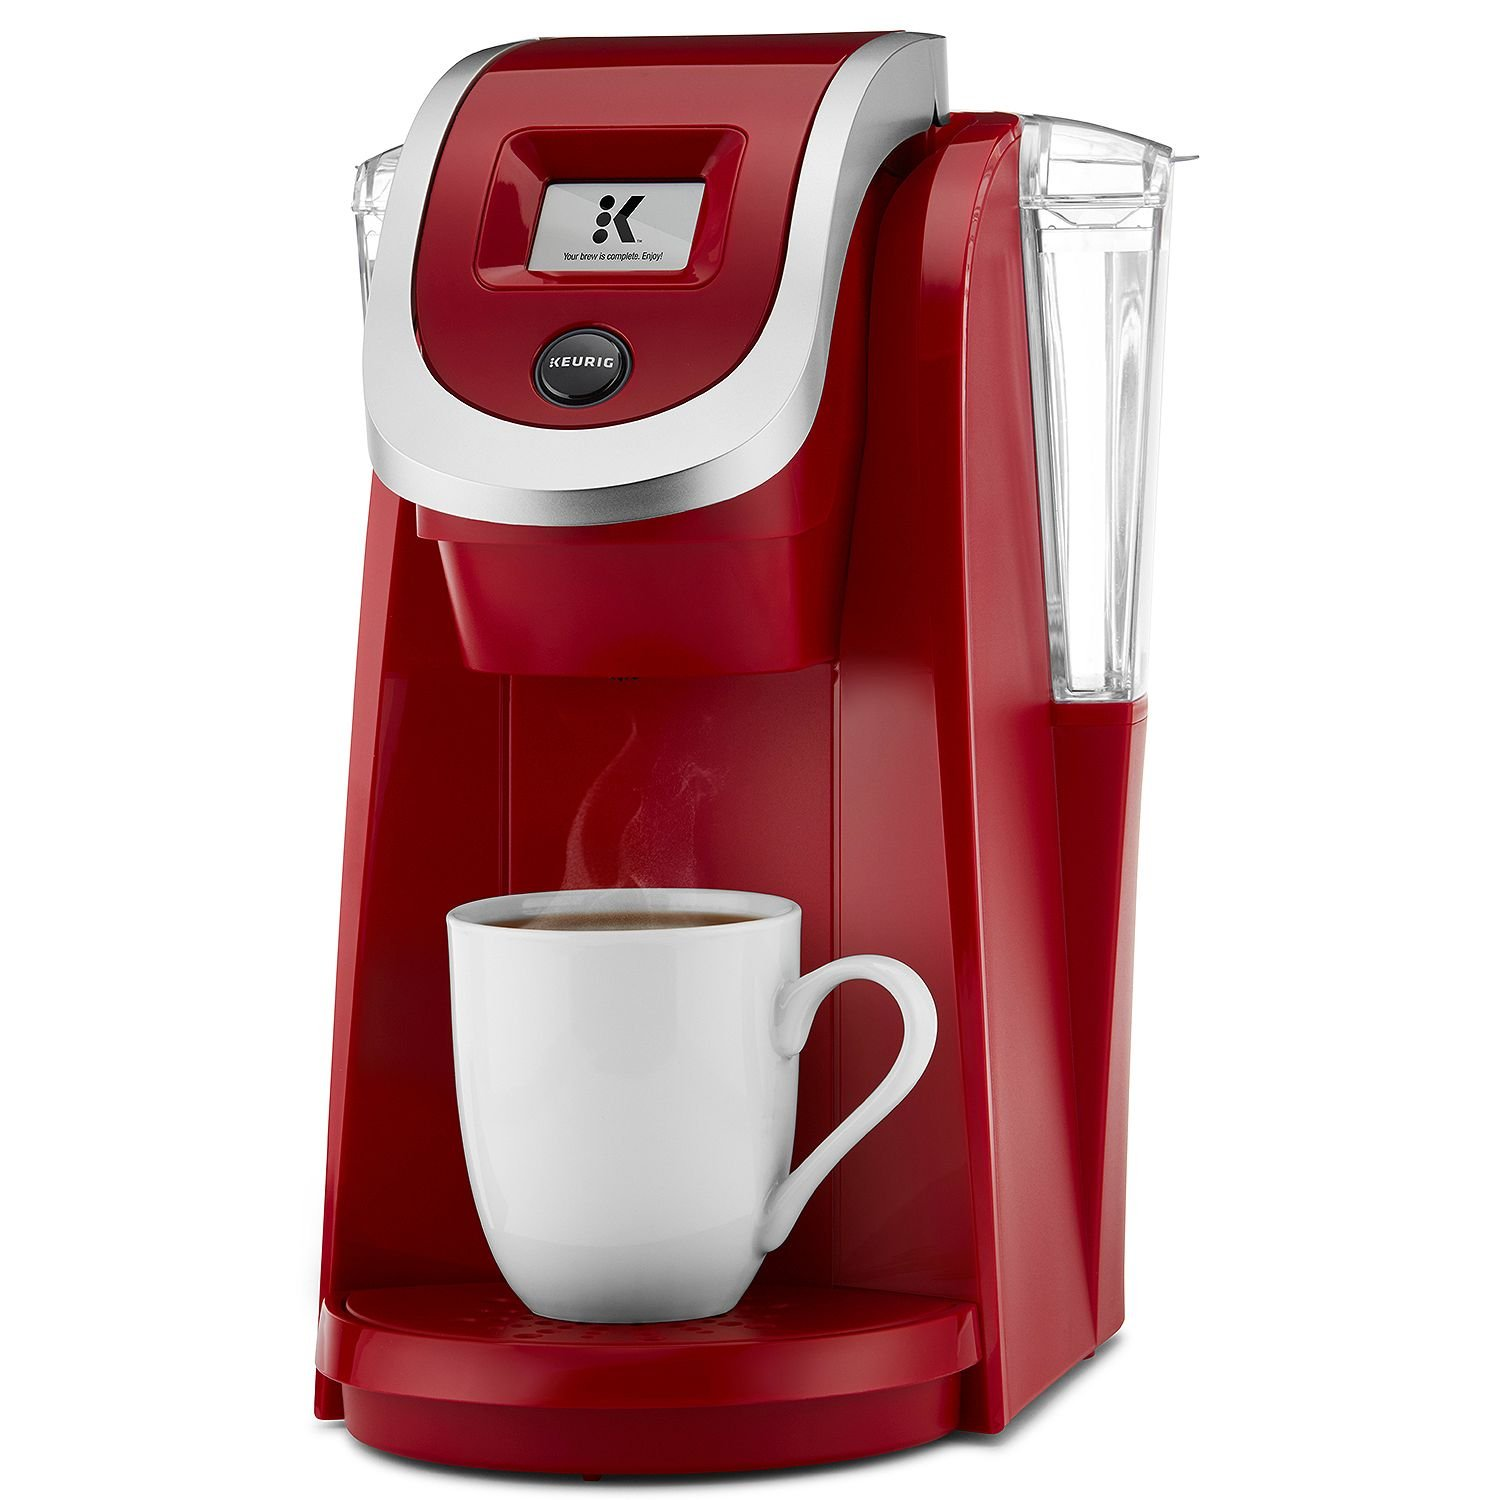 Keurig K200 Plus Series 2.0 Single Serve Plus Coffee Maker Brewer- Imperial Red (New Color)